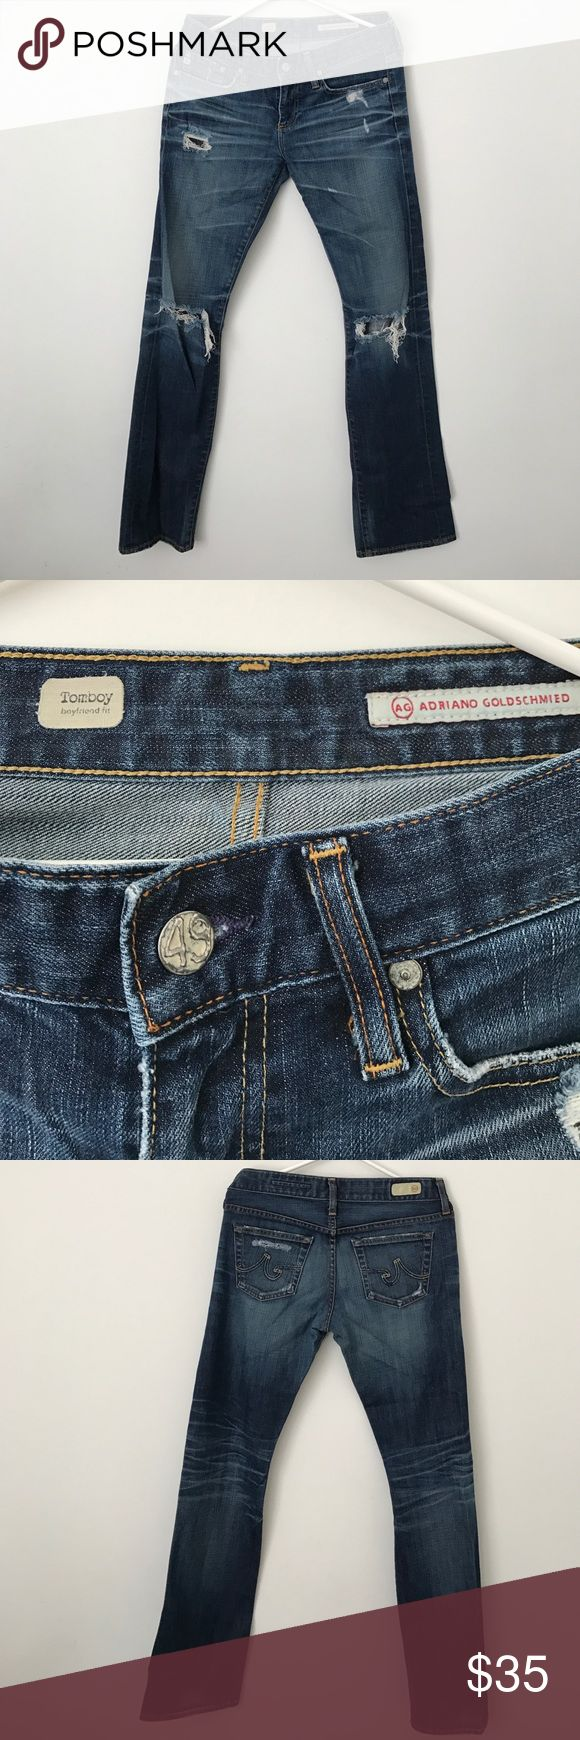 AG Adriano Goldschmied. Tomboy boyfriend fit. AG Adriano Goldschmied. Tomboy boyfriend fit. Great condition. Non-smoking/no pets household. AG Adriano Goldschmied Jeans